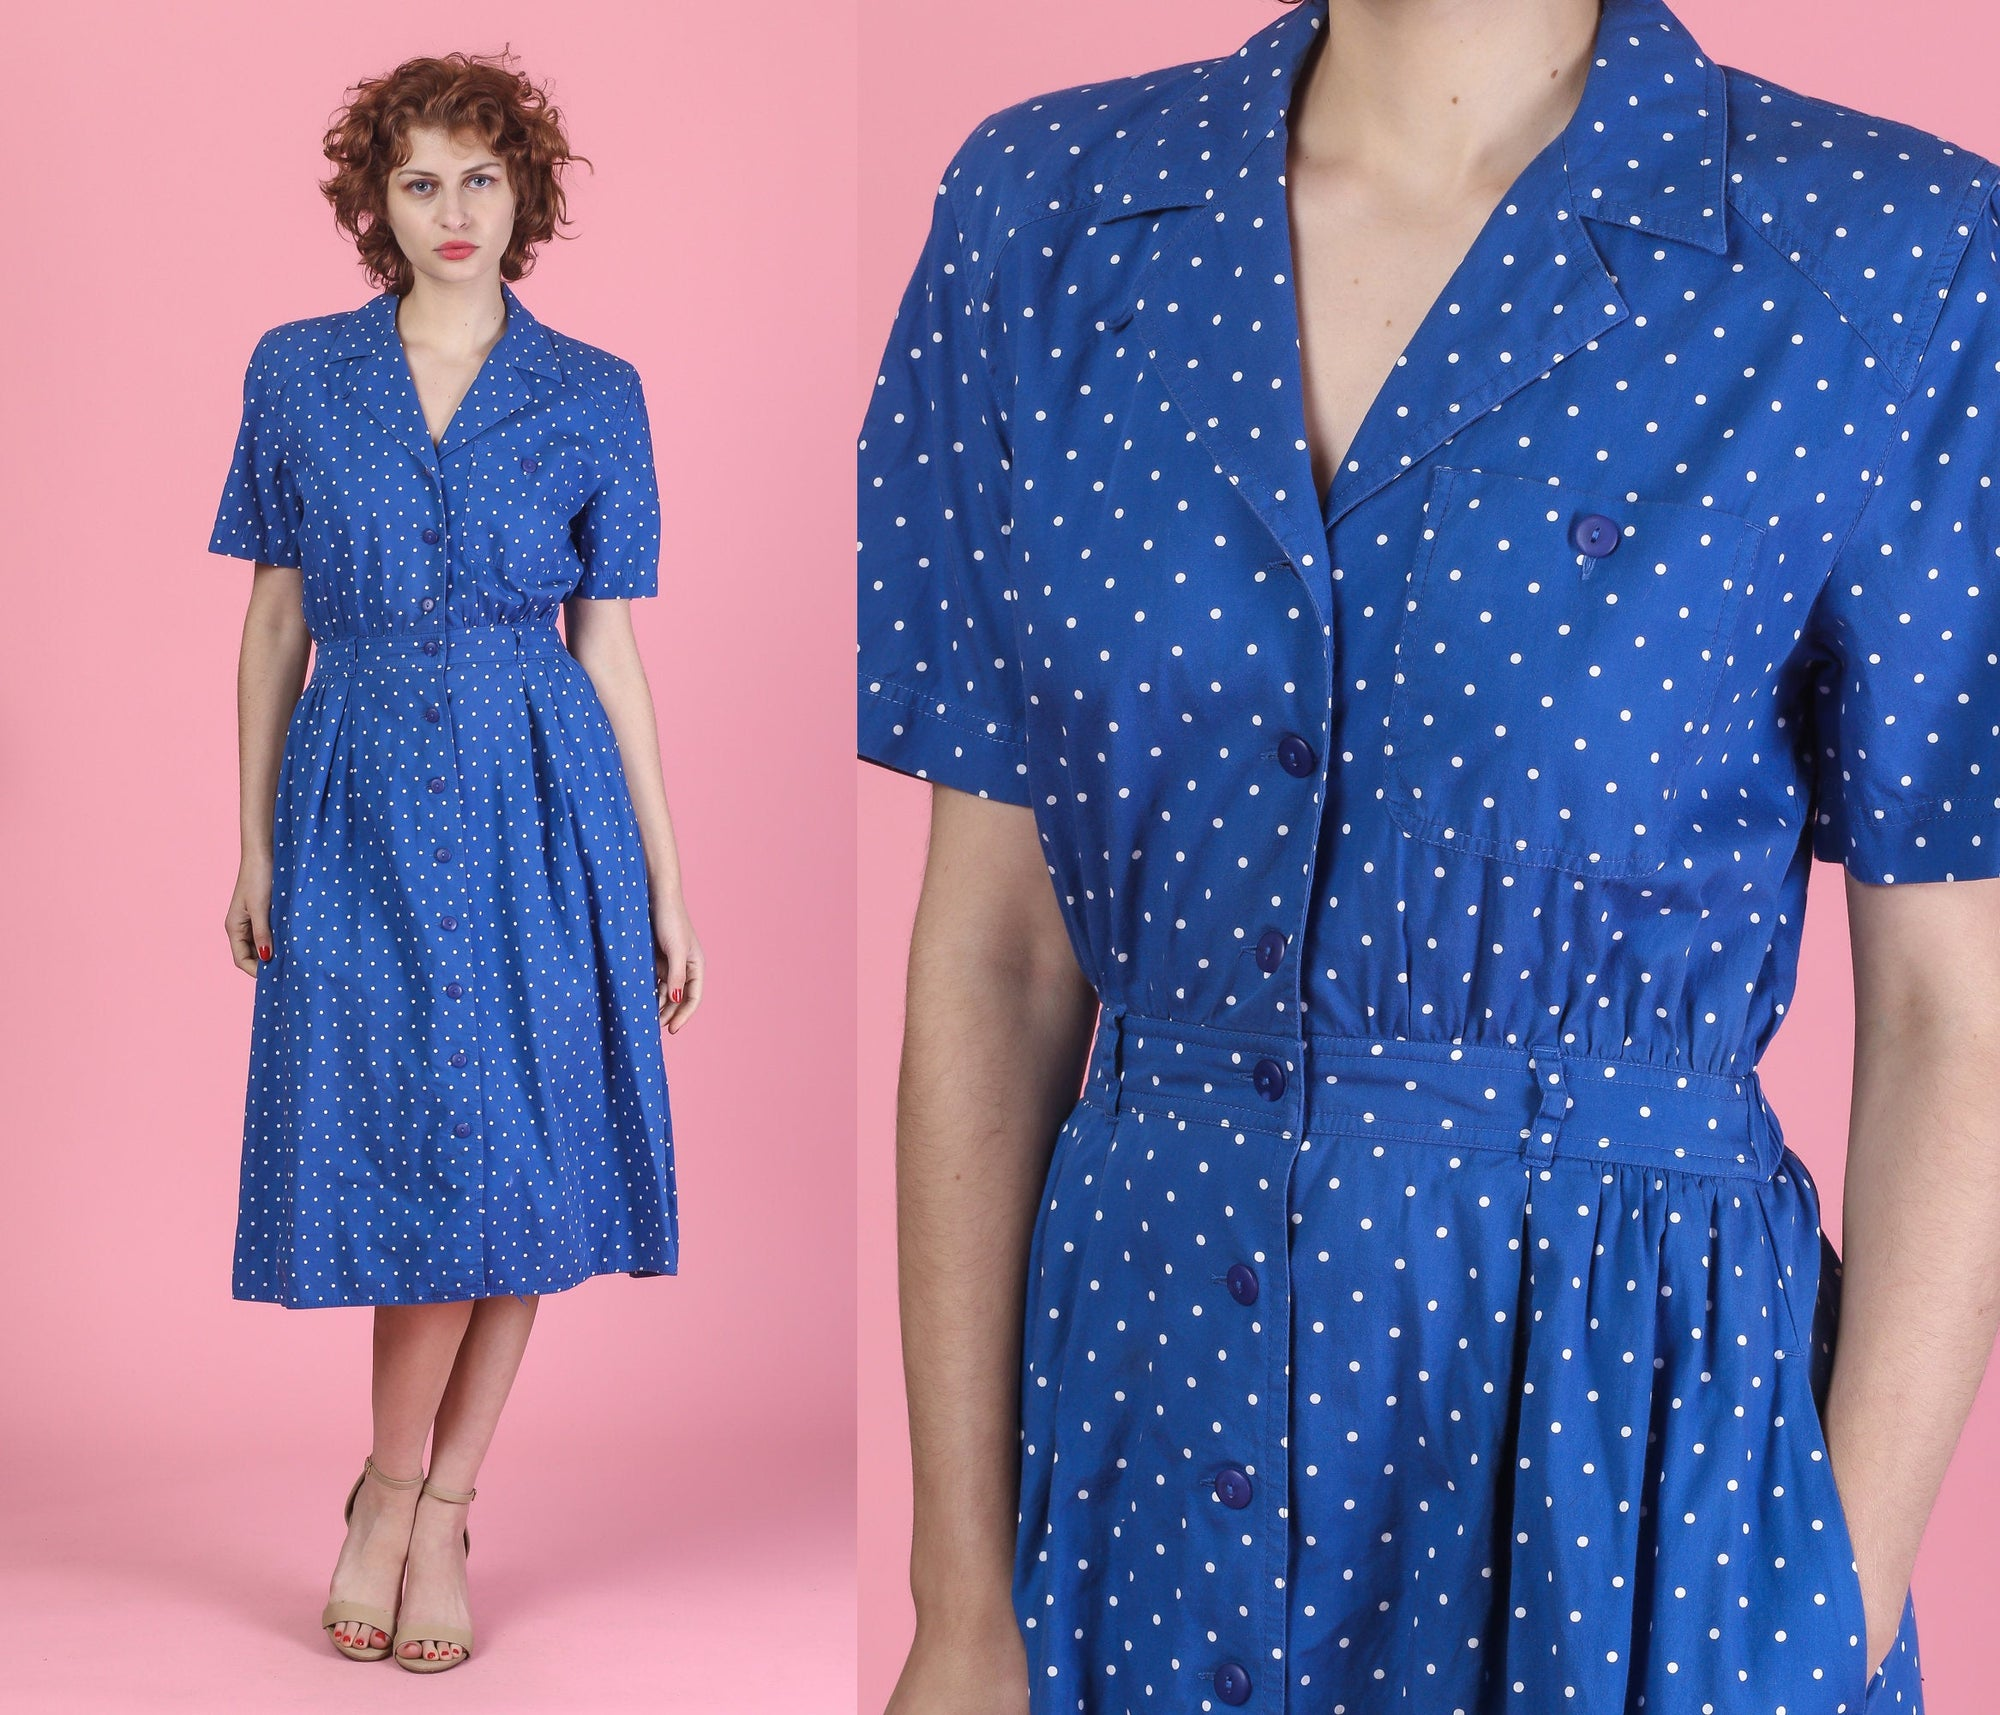 90s Blue Polka Dot Shirtdress - Small